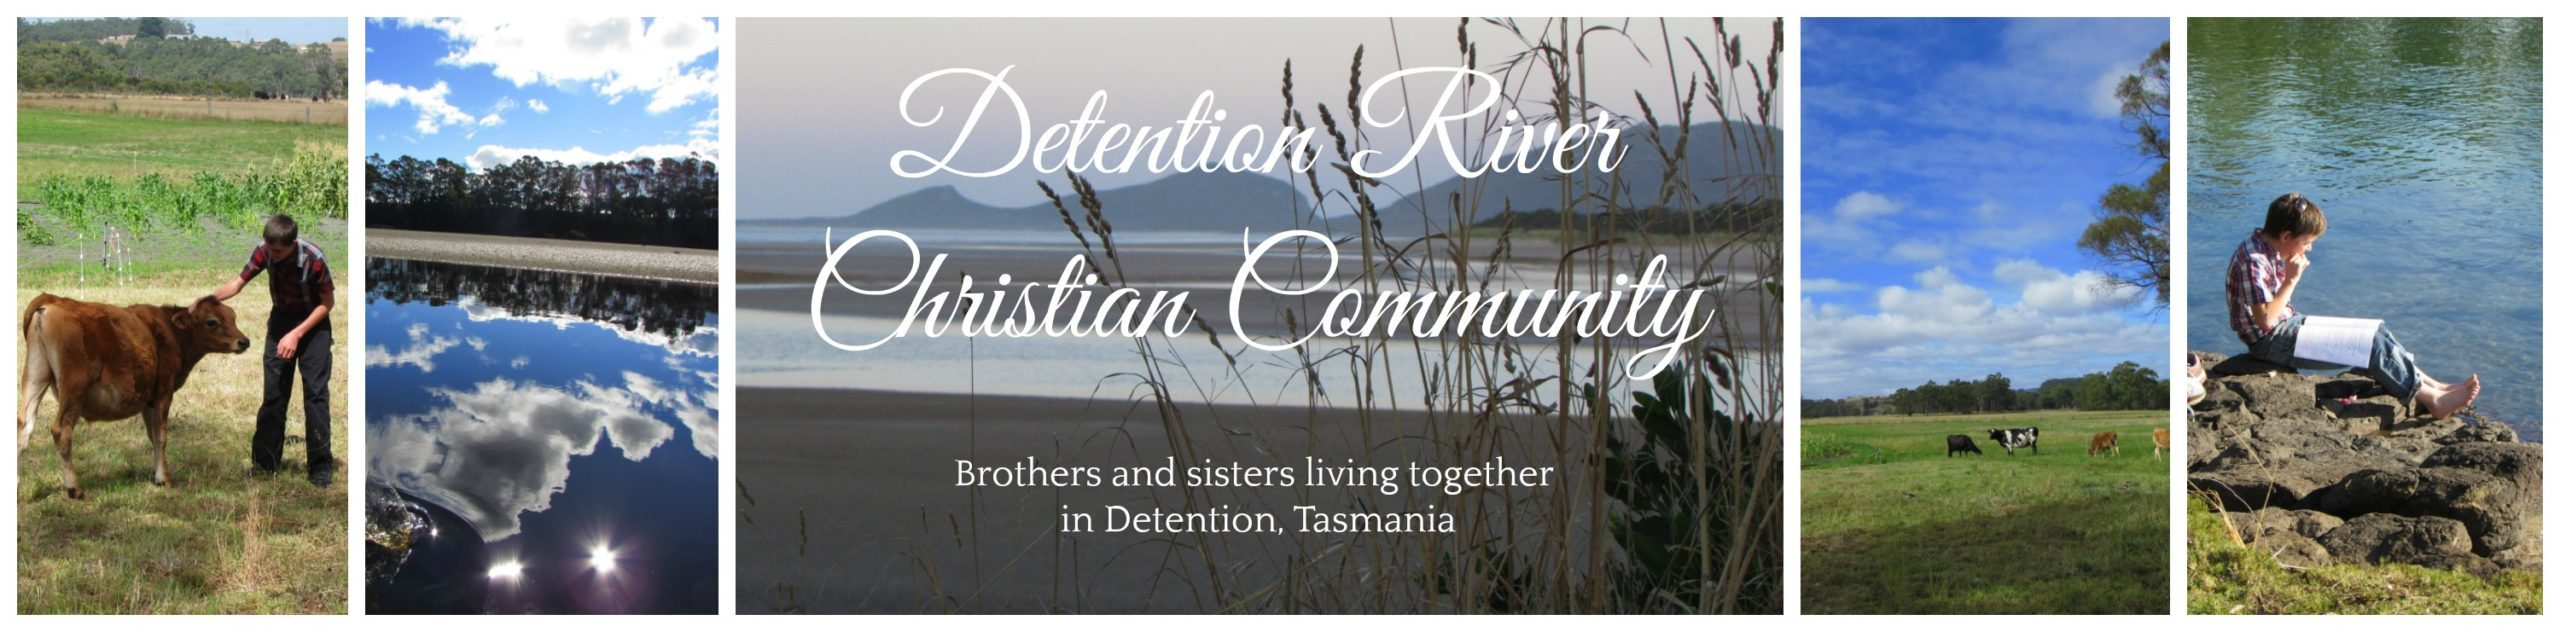 Detention River Christian Community